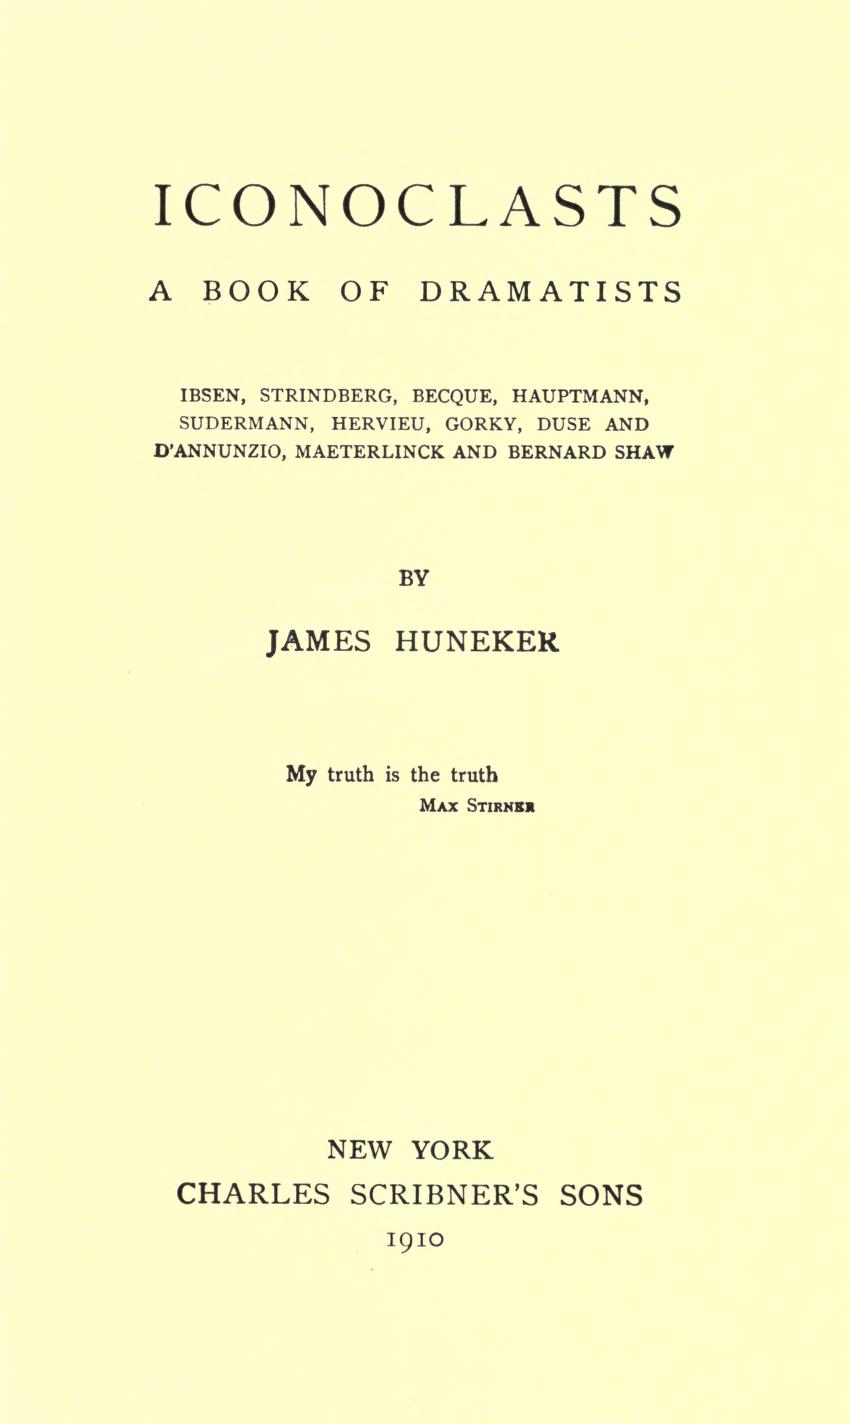 The project gutenberg ebook of iconoclasts by james huneker iconoclasts greentooth Images